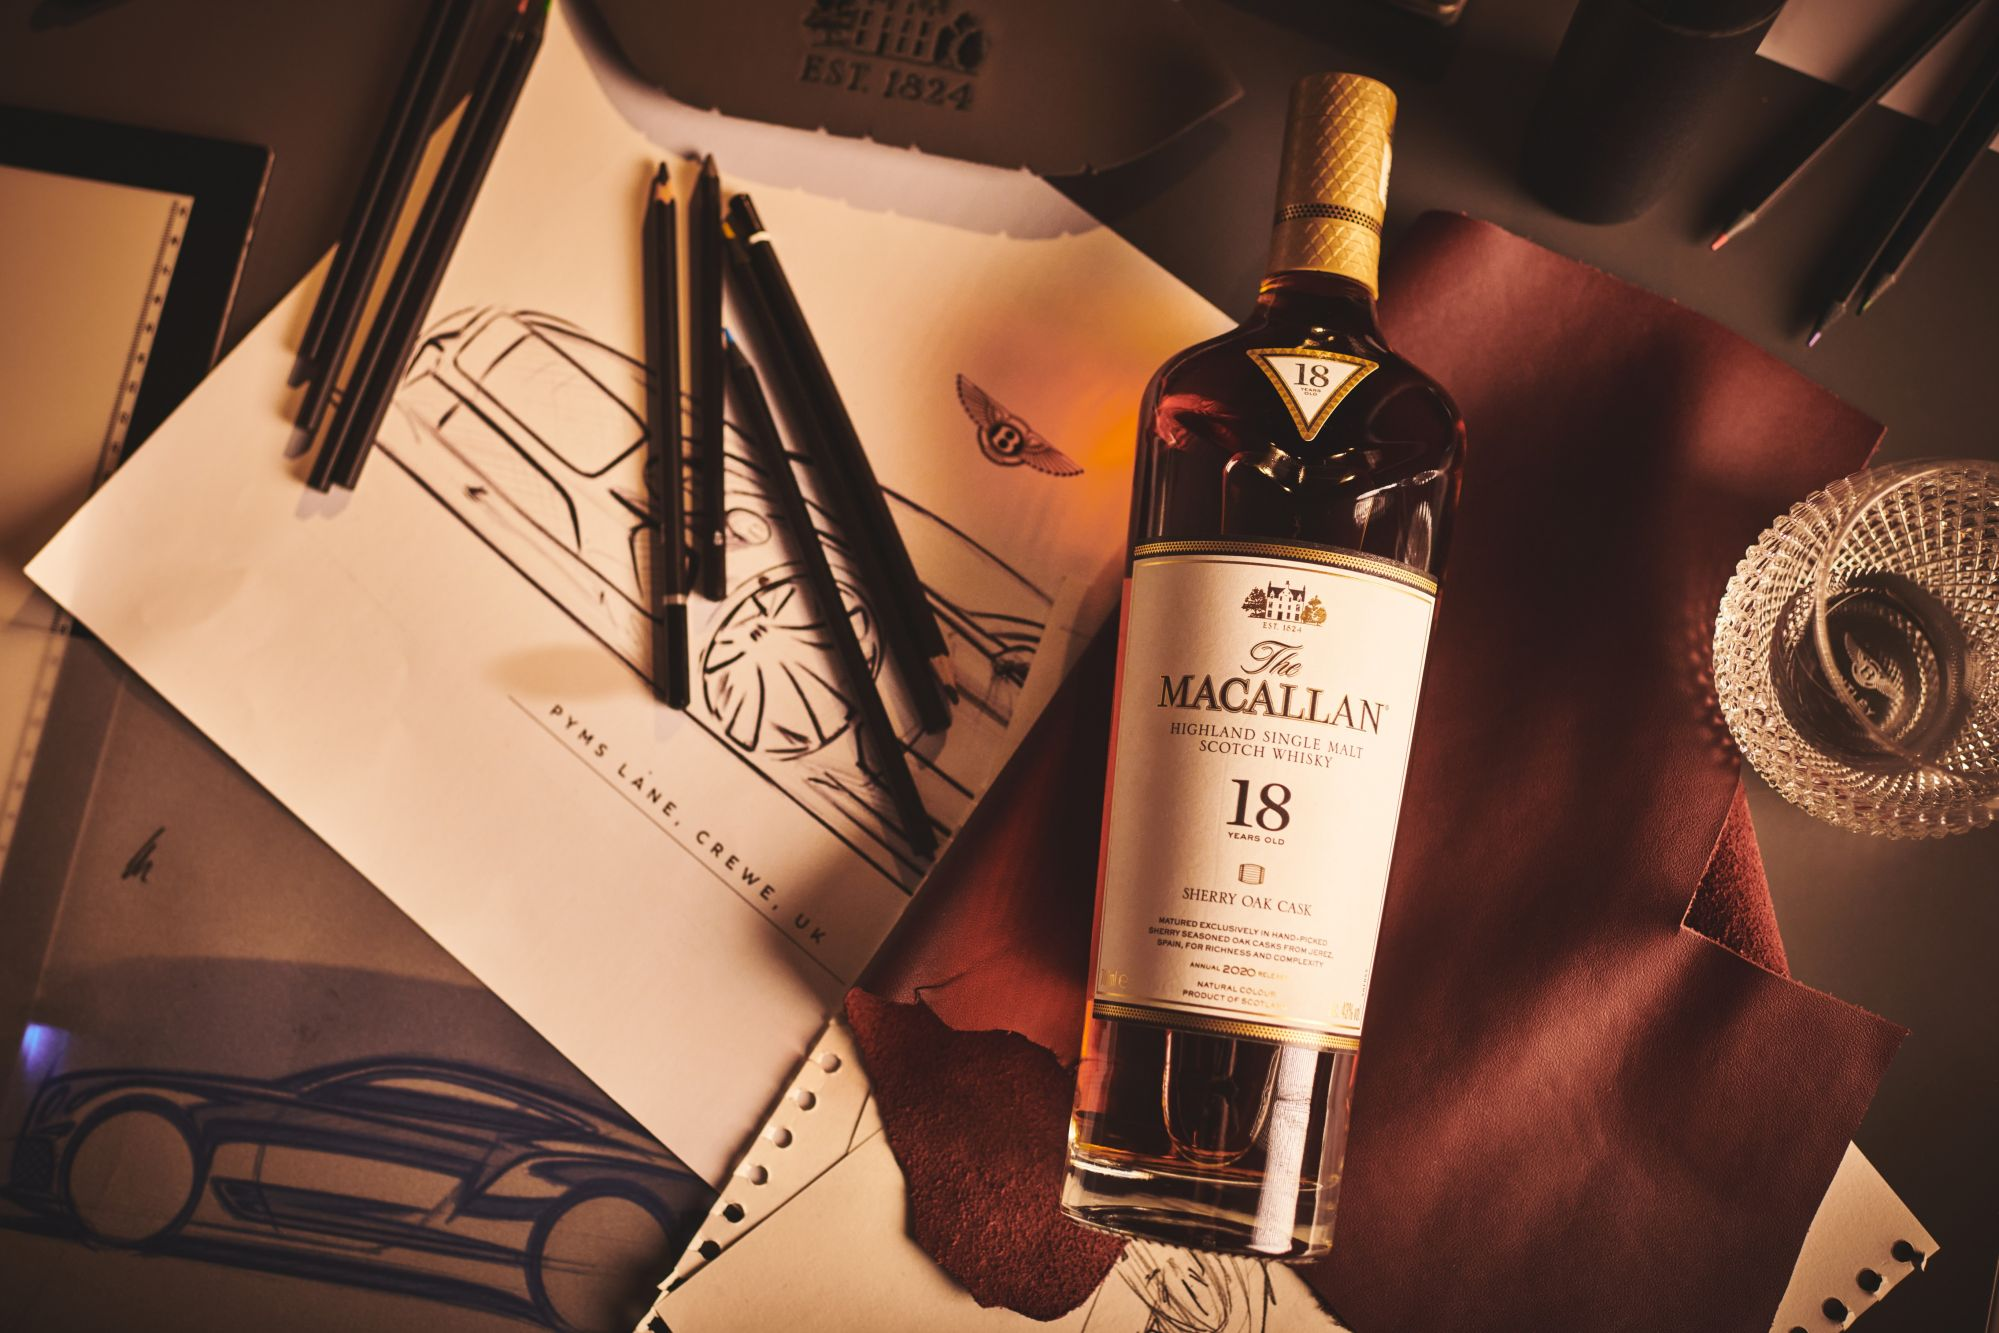 The Macallan is renowned worldwide for its extraordinary single malt whiskies